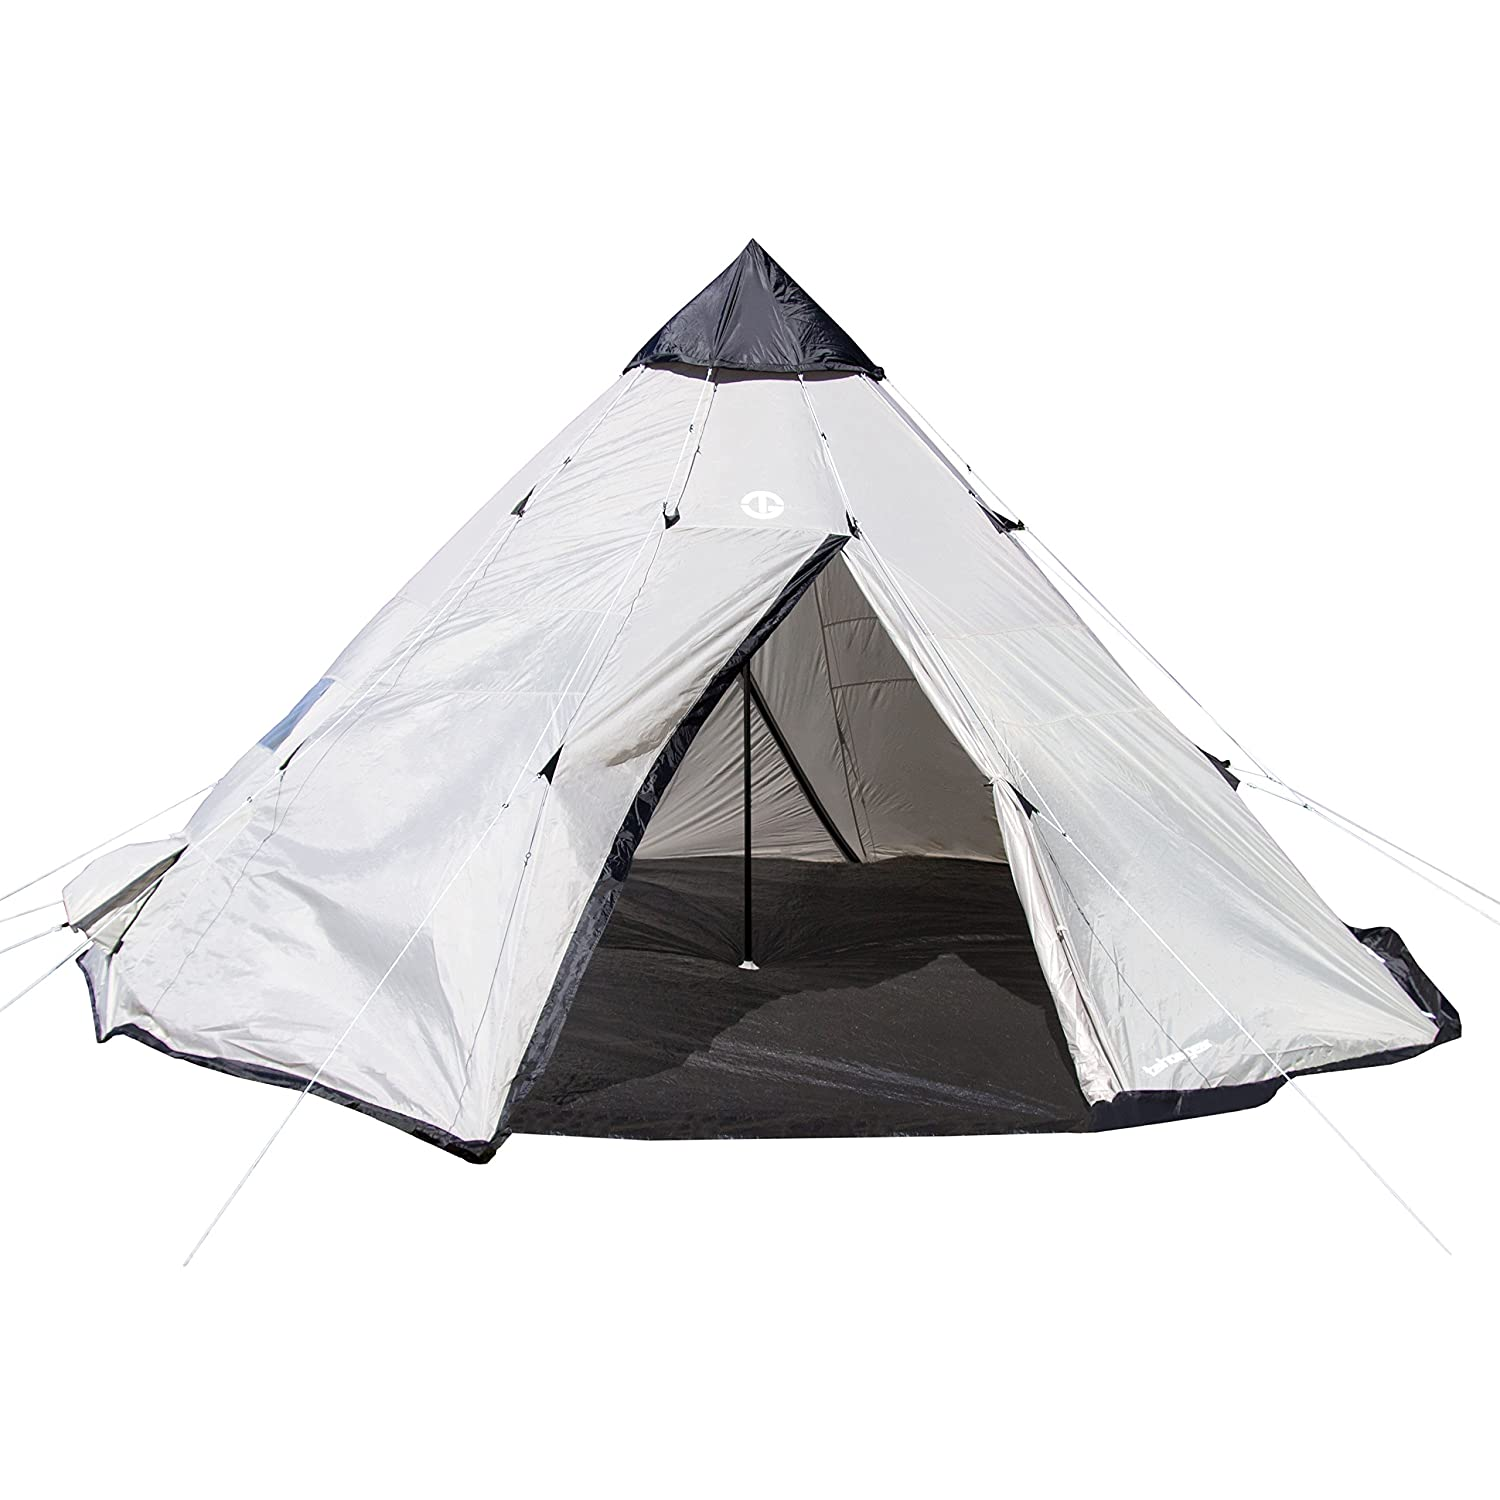 Amazon.com  Tahoe Gear Bighorn XL 12-Person 18u0027 x 18u0027 Teepee Cone Shape C&ing Tent  Sports u0026 Outdoors  sc 1 st  Amazon.com : canvas tents ebay - memphite.com